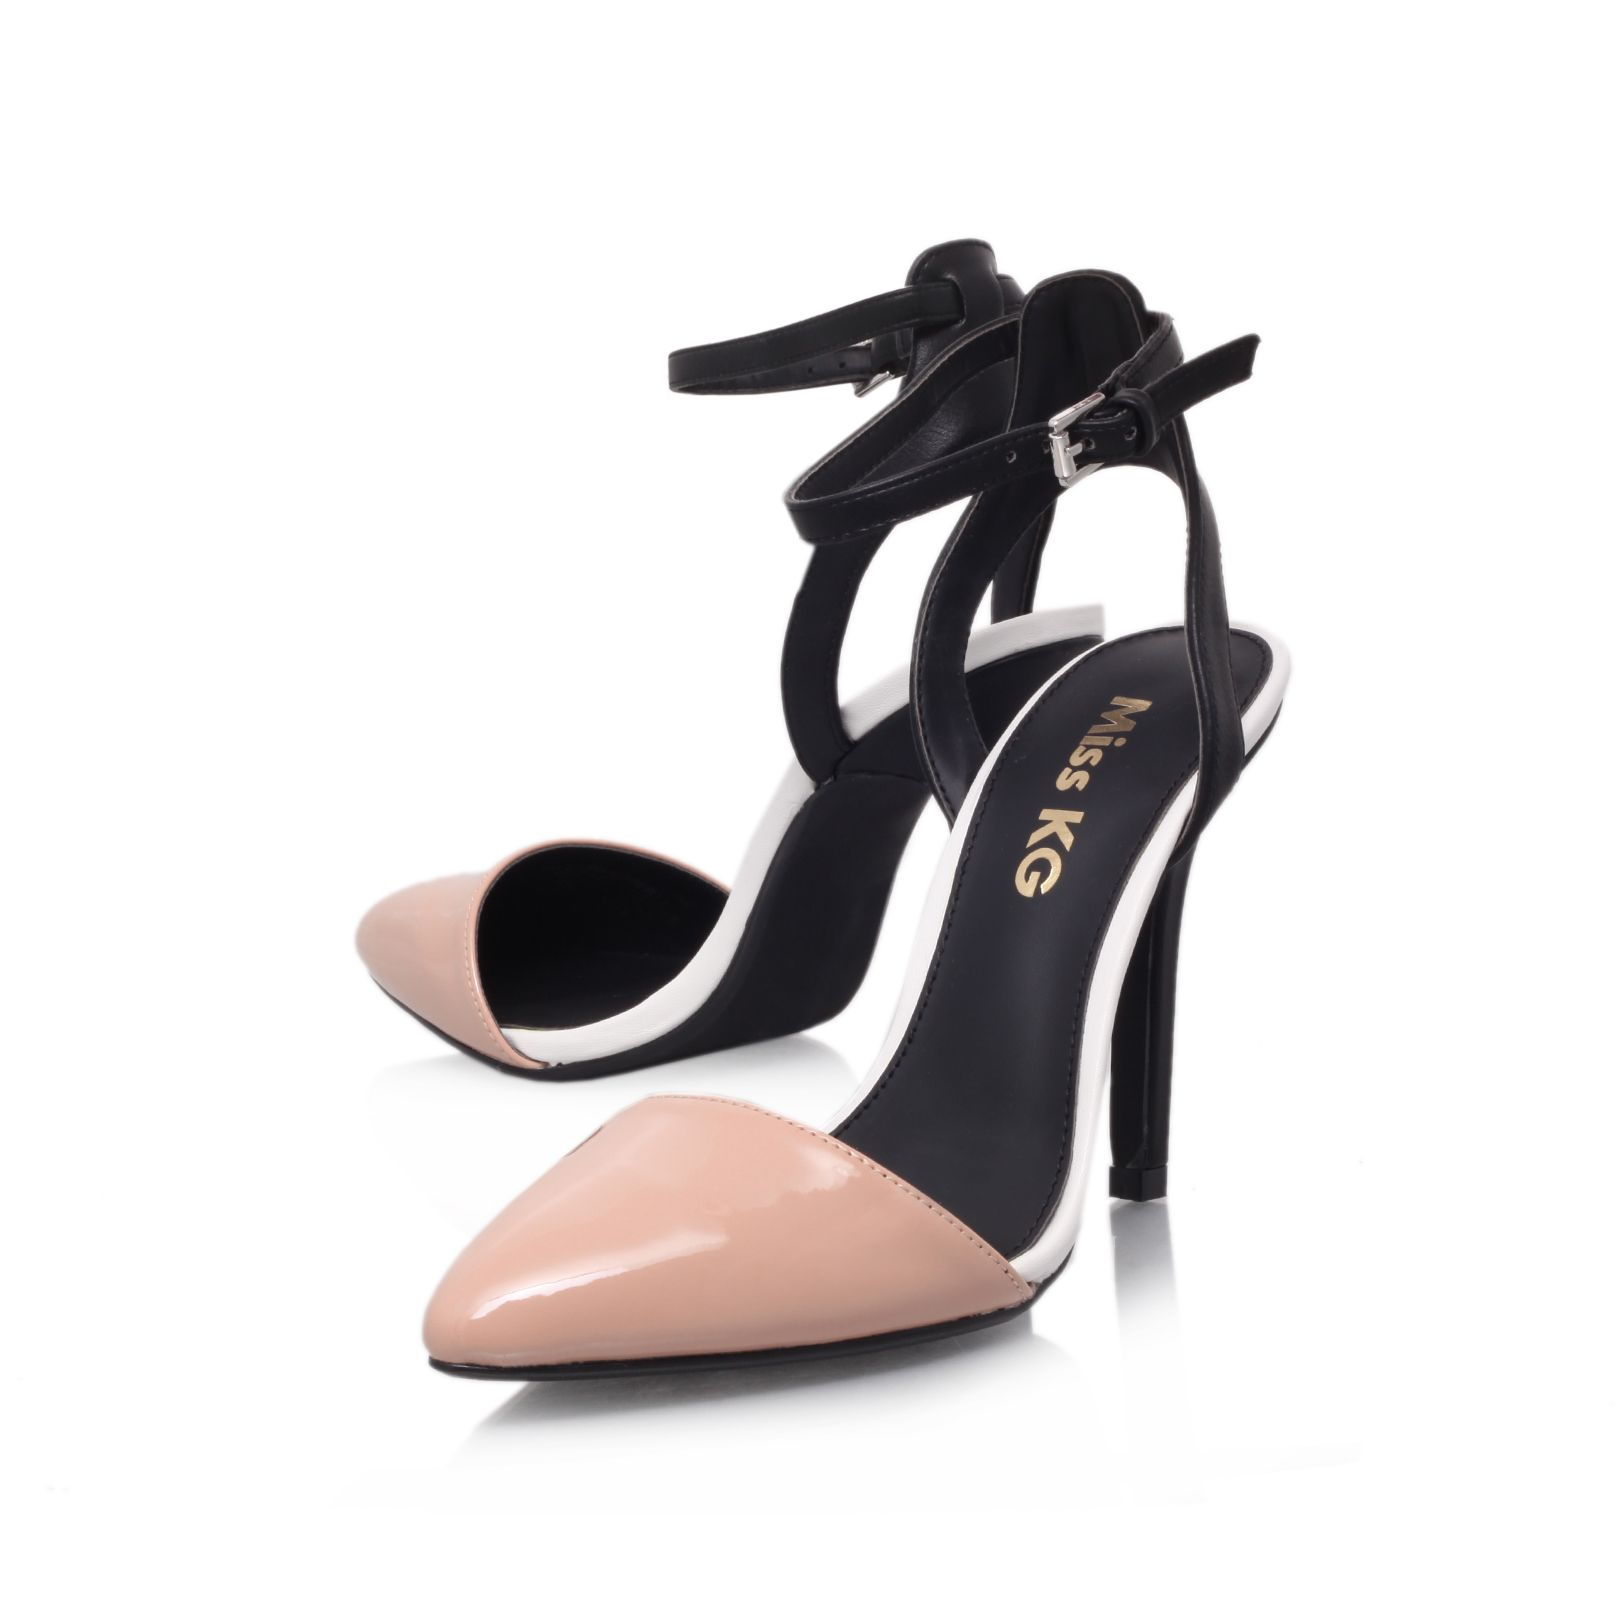 Alba high heel sandals